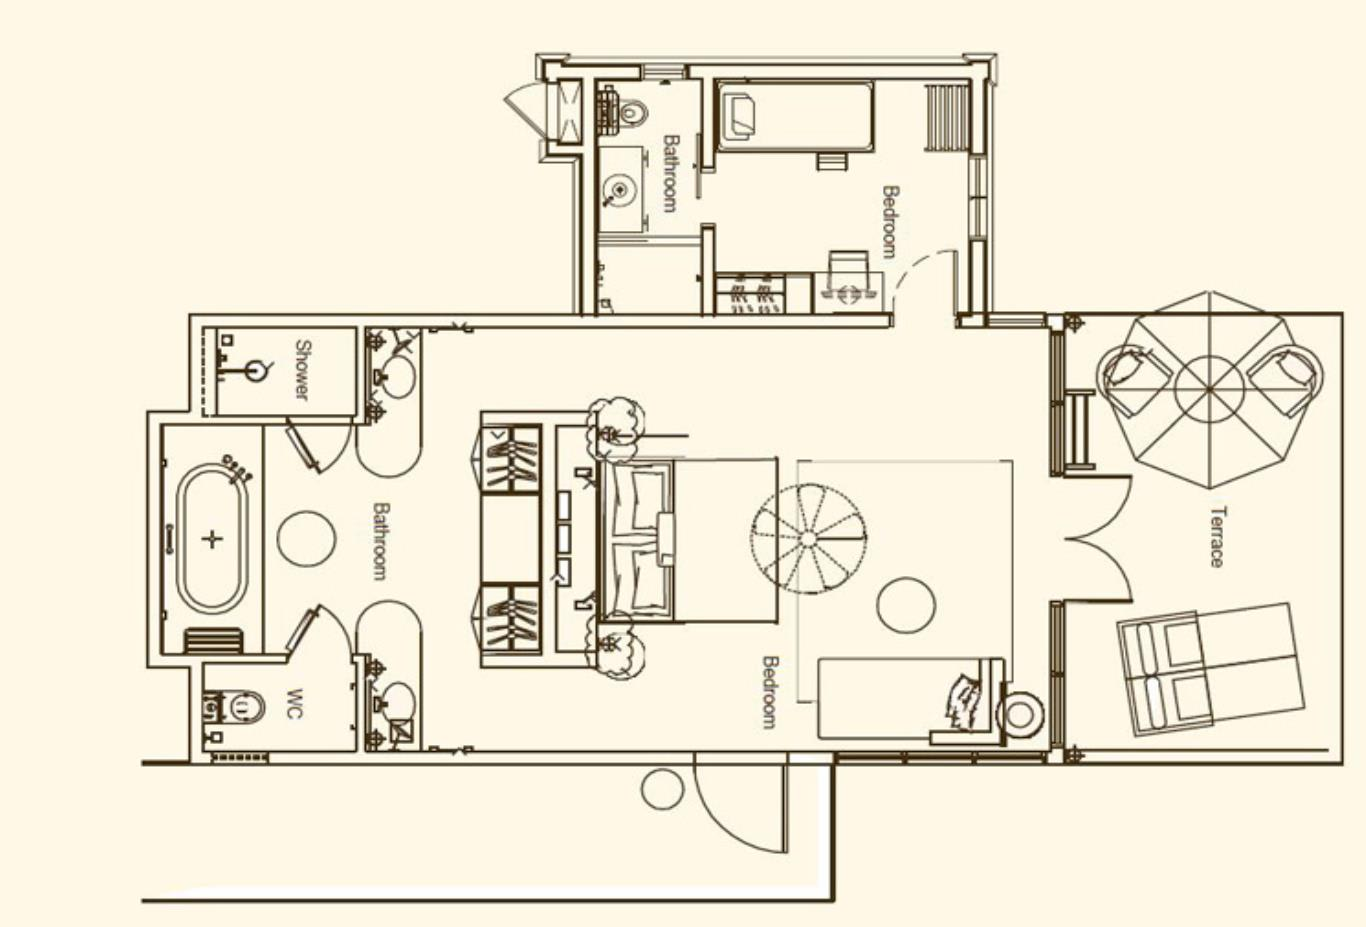 Family Suite Floorplan